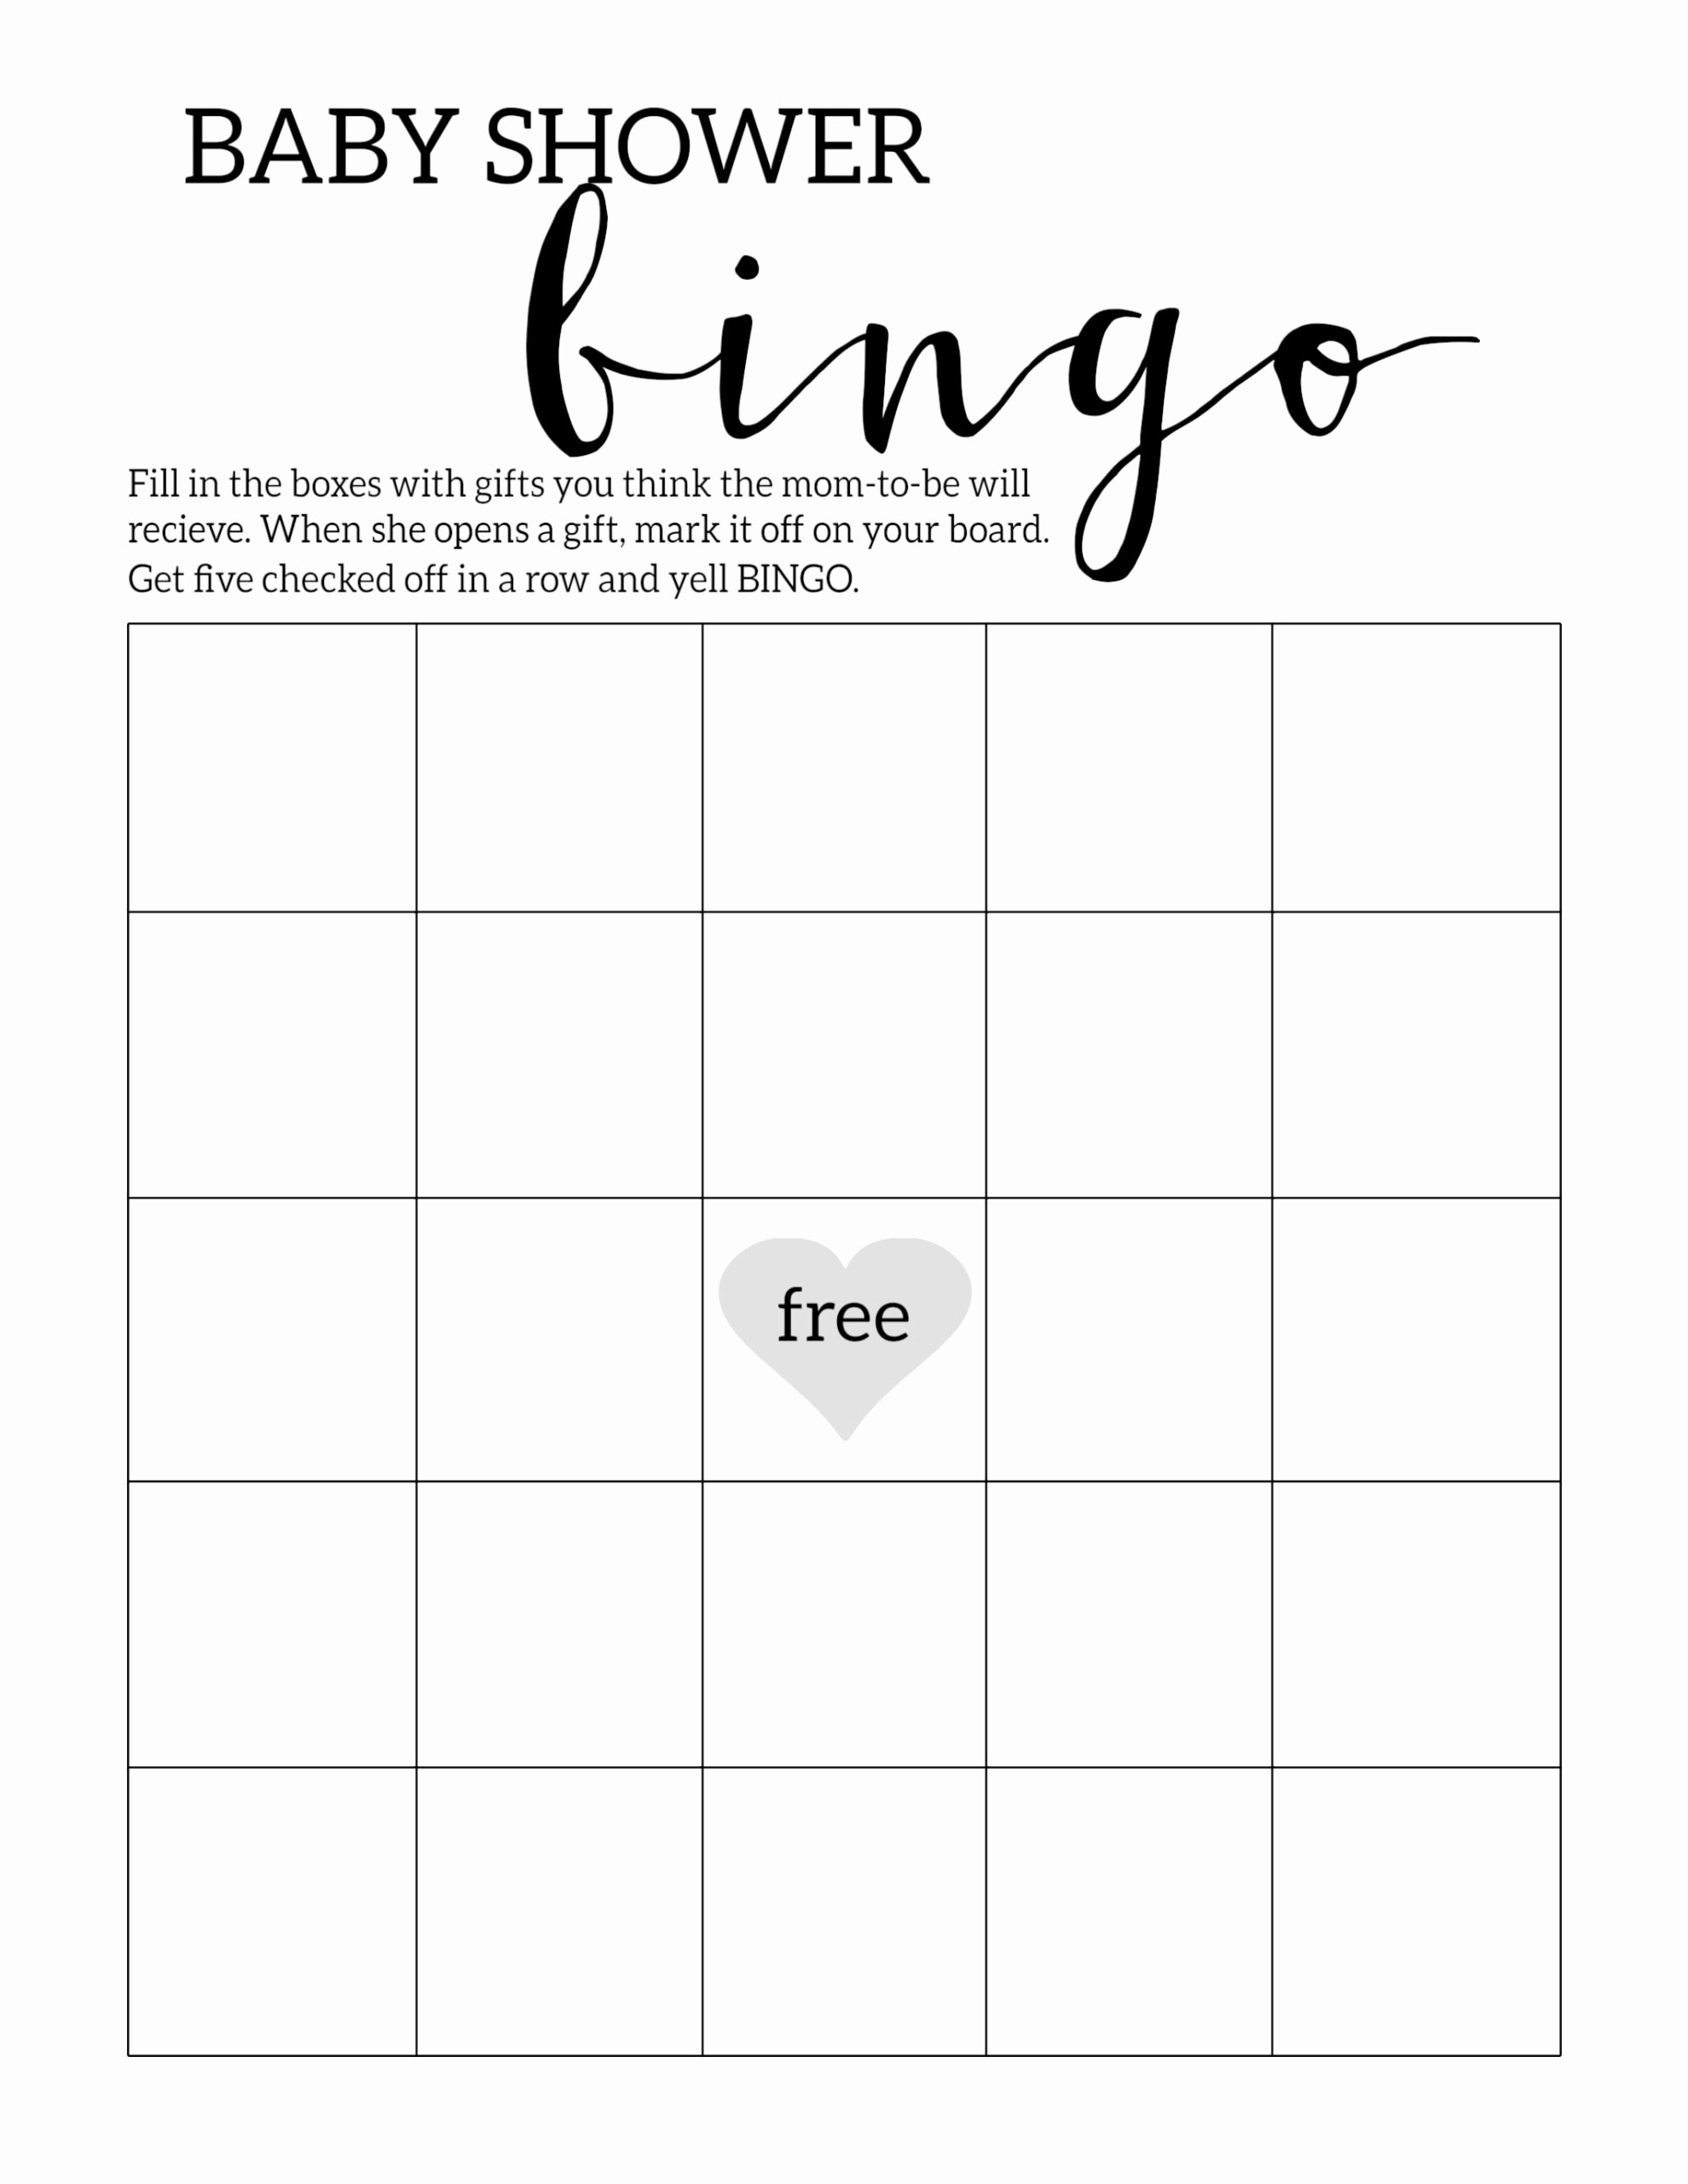 Free Printable Baby Shower Card Elegant Baby Shower Bingo Printable Cards Template Paper Trail